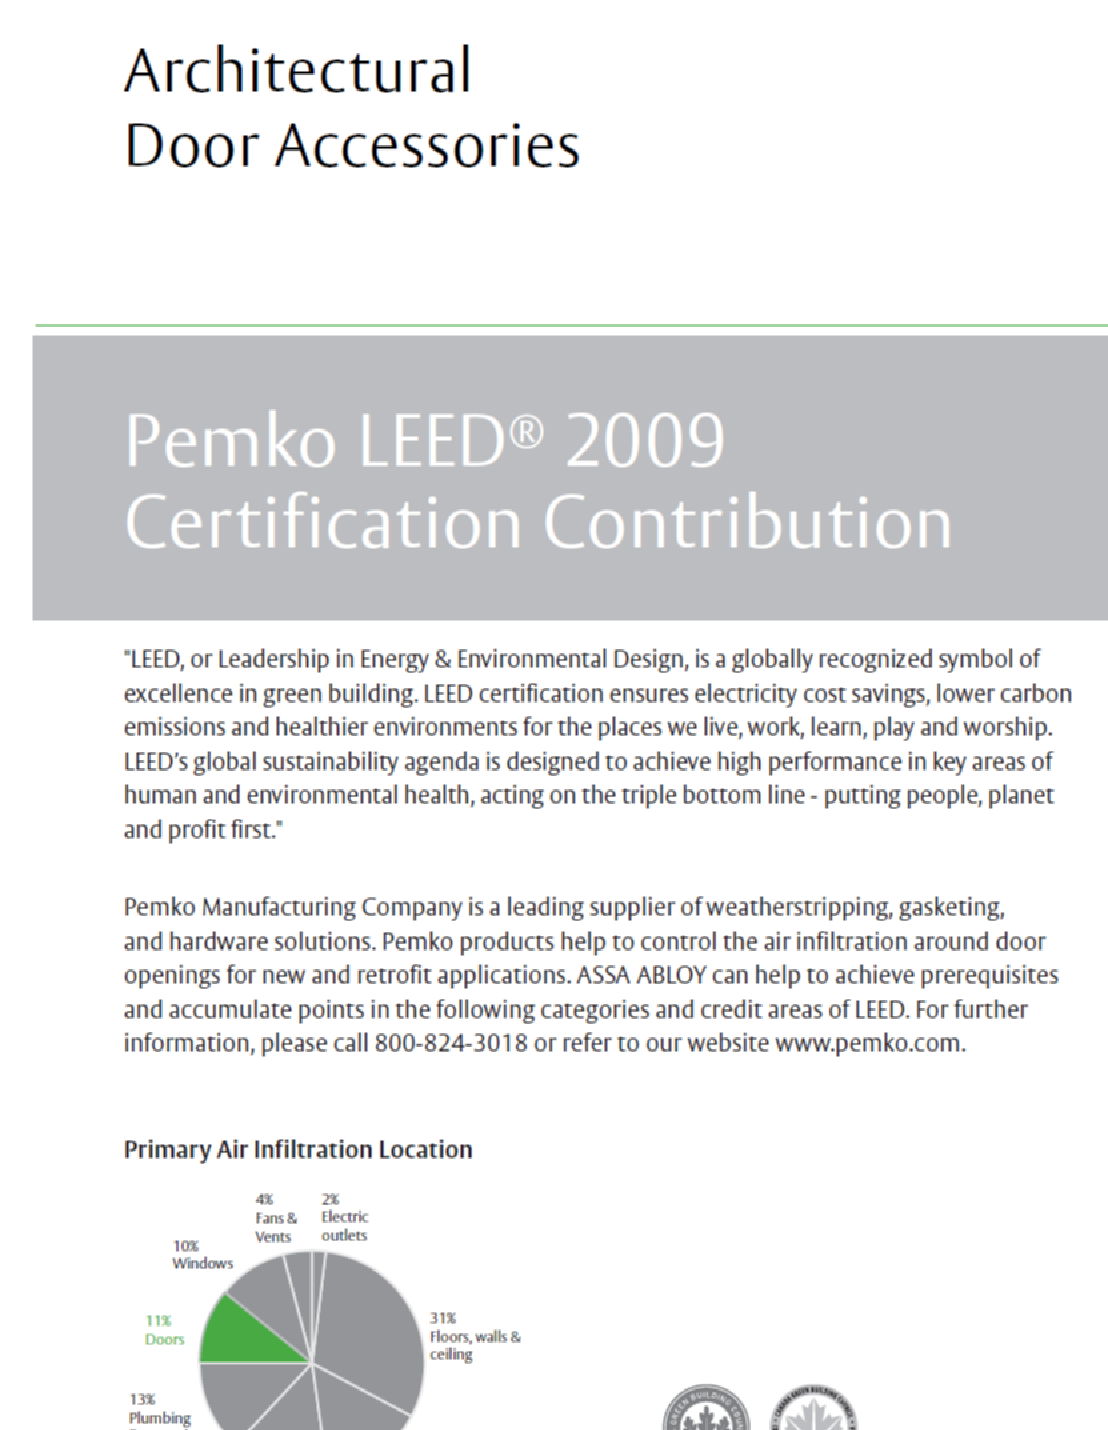 PEMKO LEED Certification Contribution